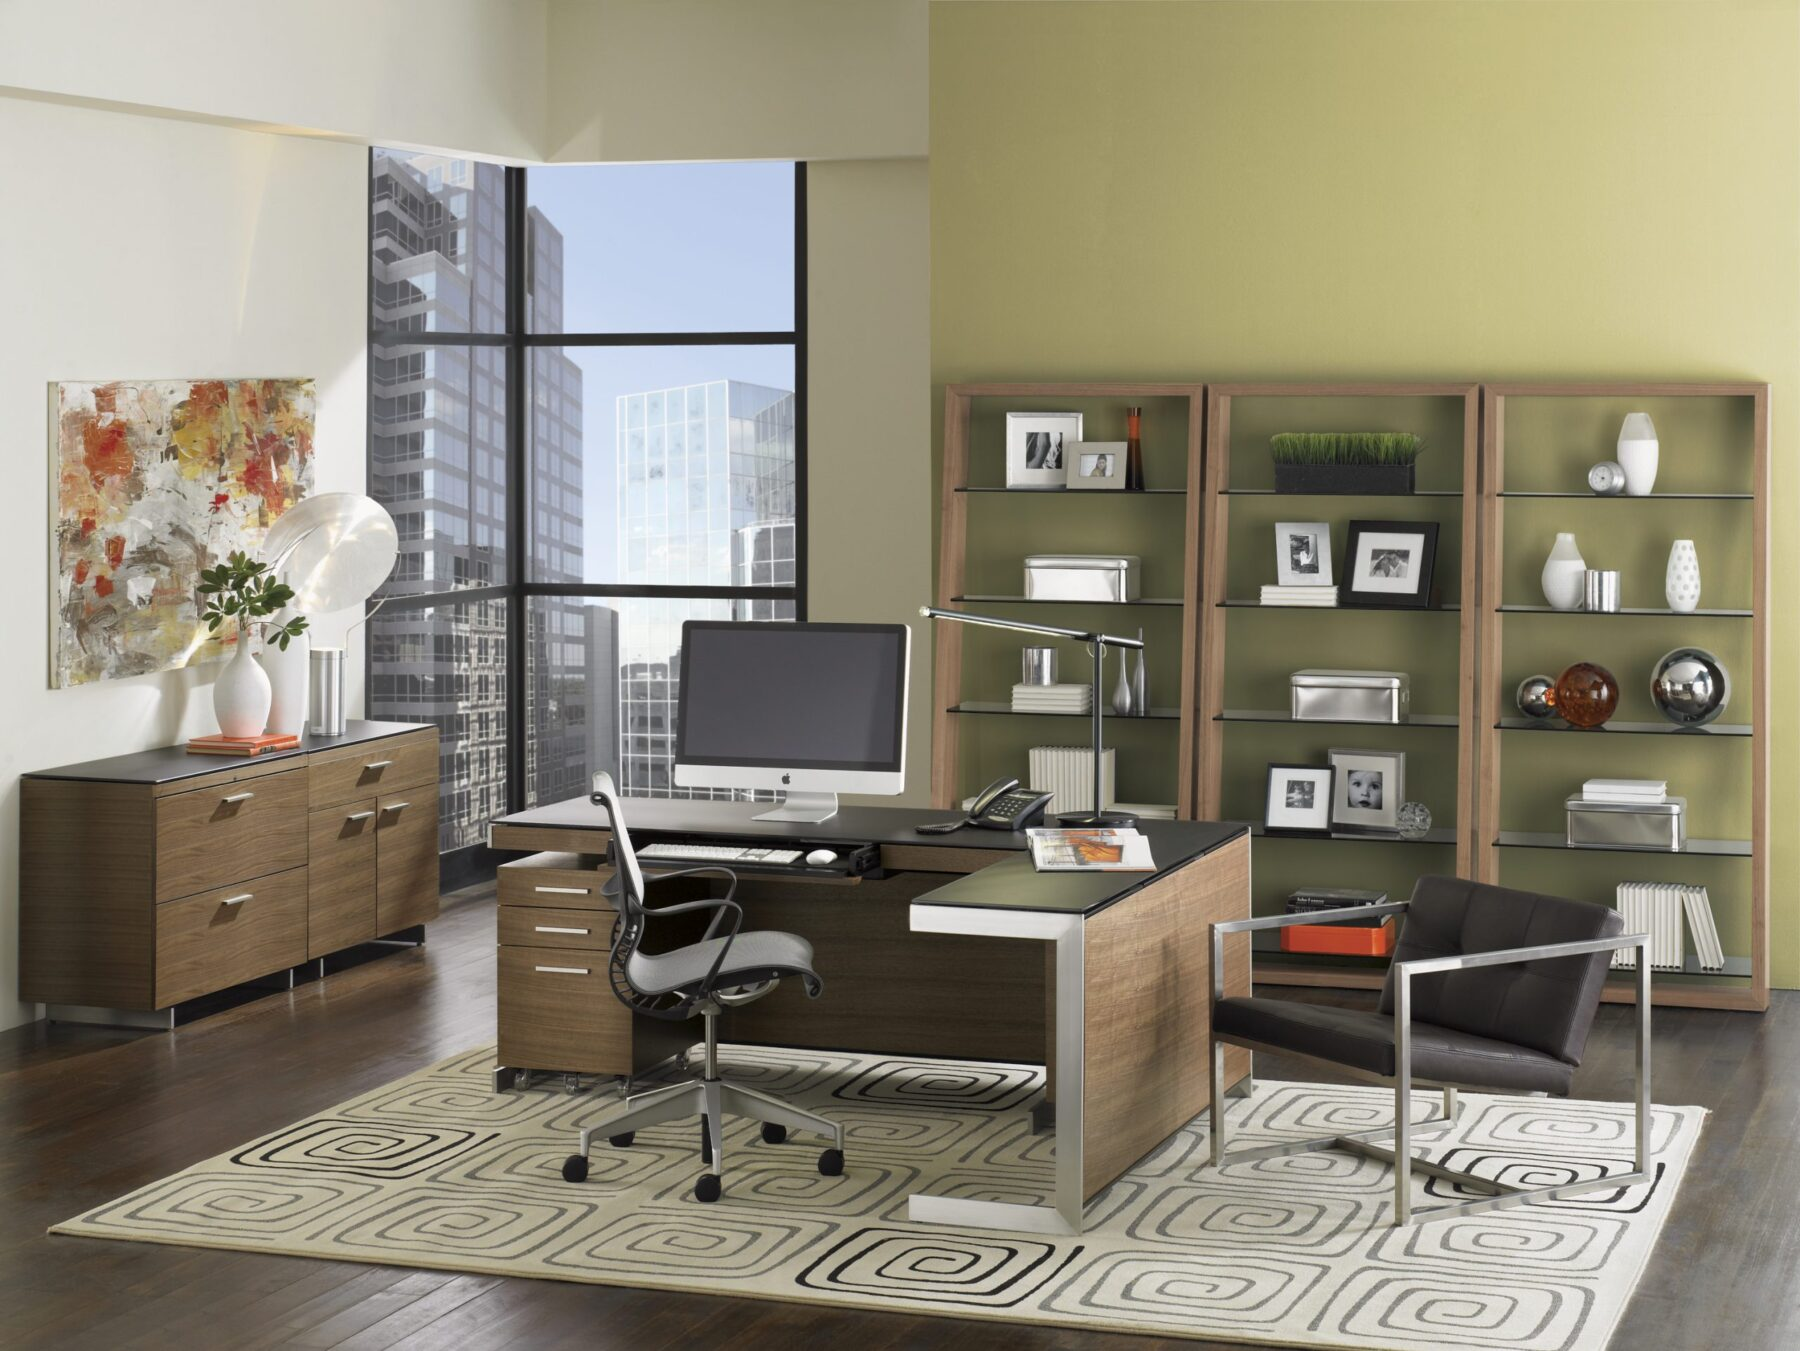 sequel-office-walnut-bdi-modular-office-furniture